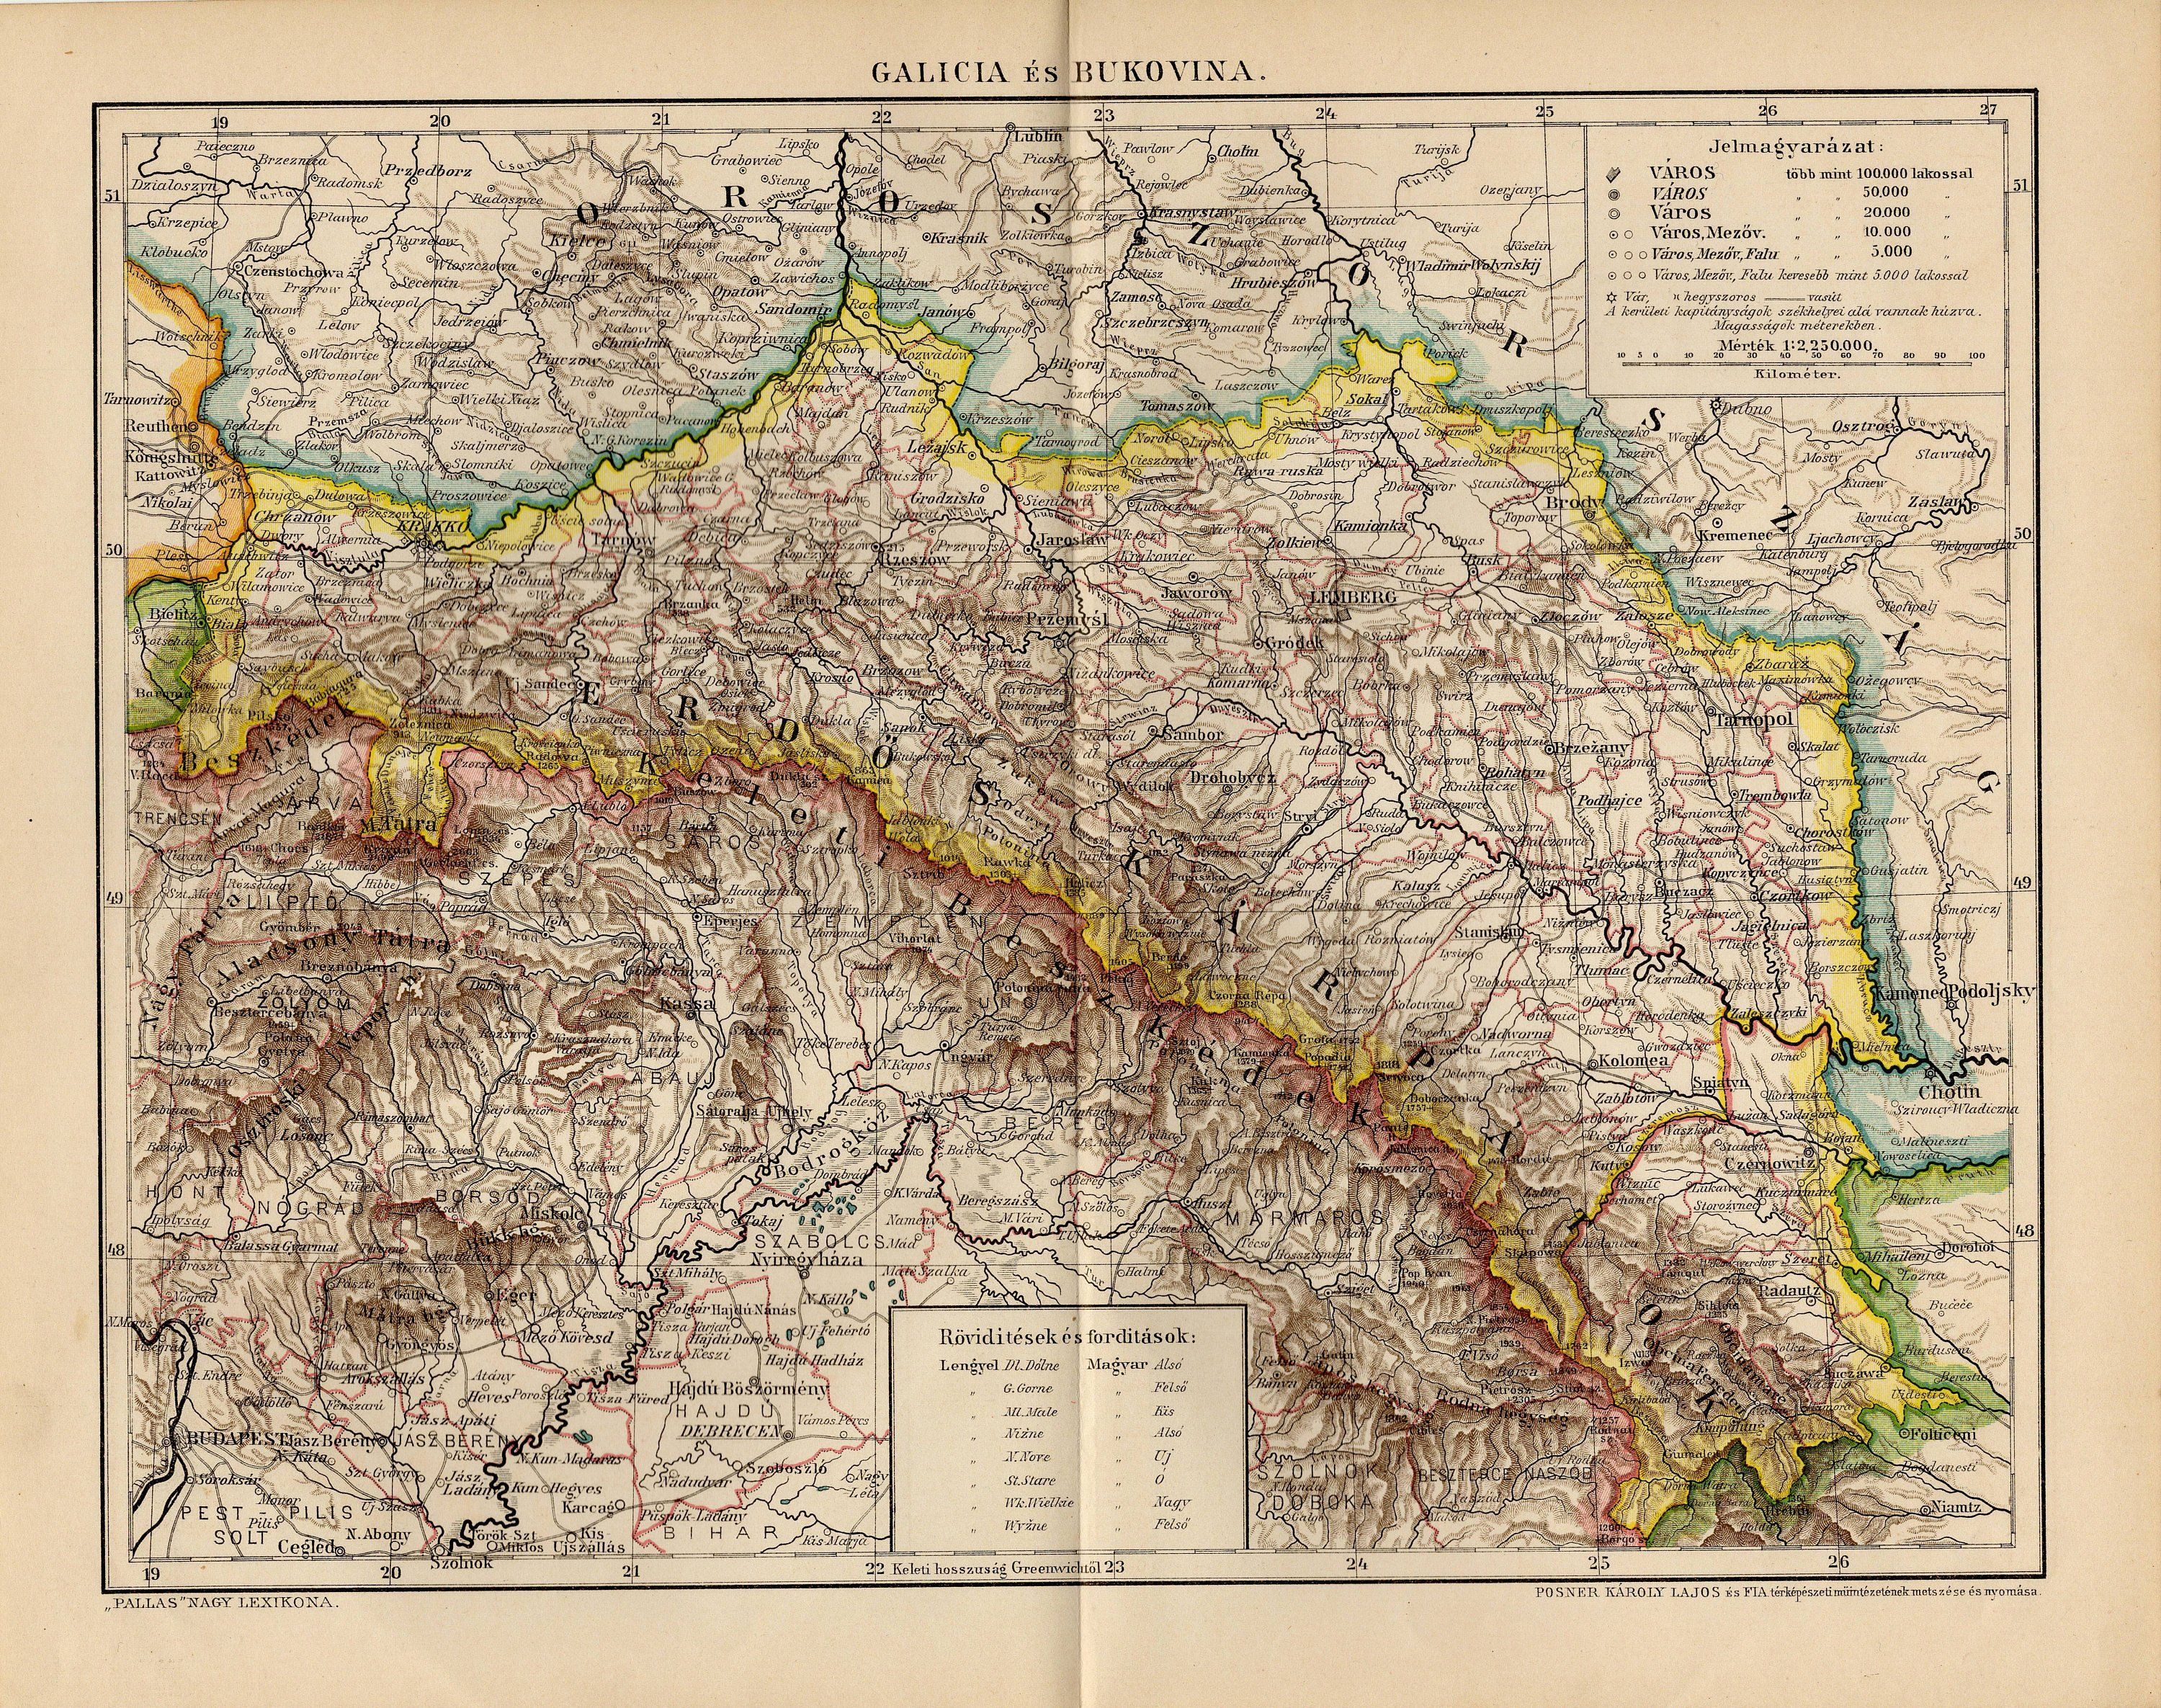 Antique Map Of Galicia Eastern Europe And Bukovina From 1894 By